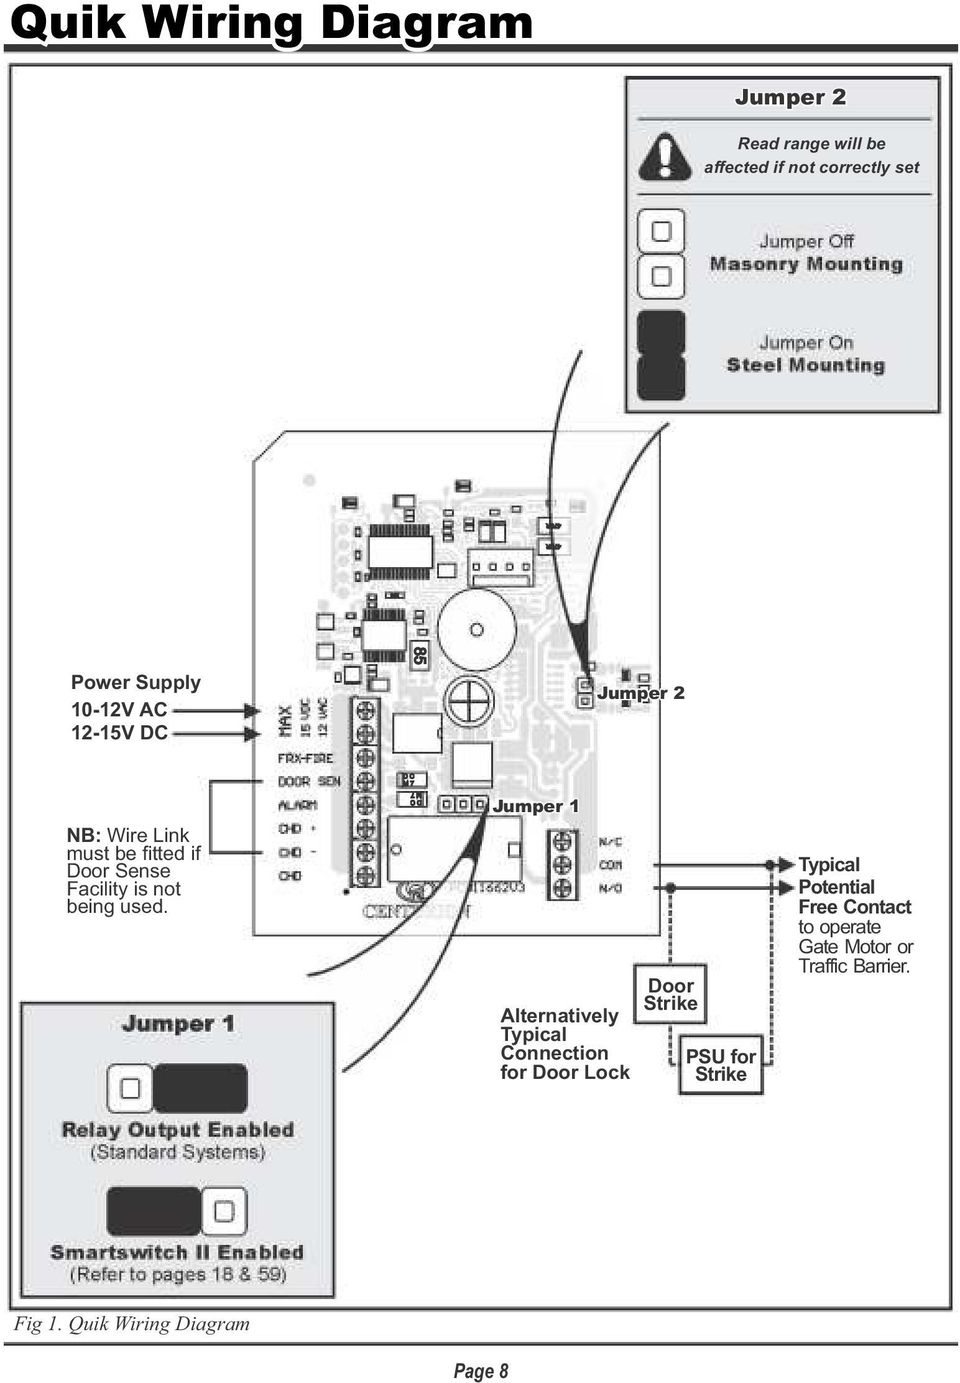 medium resolution of quik wiring diagram page 8 is not being used